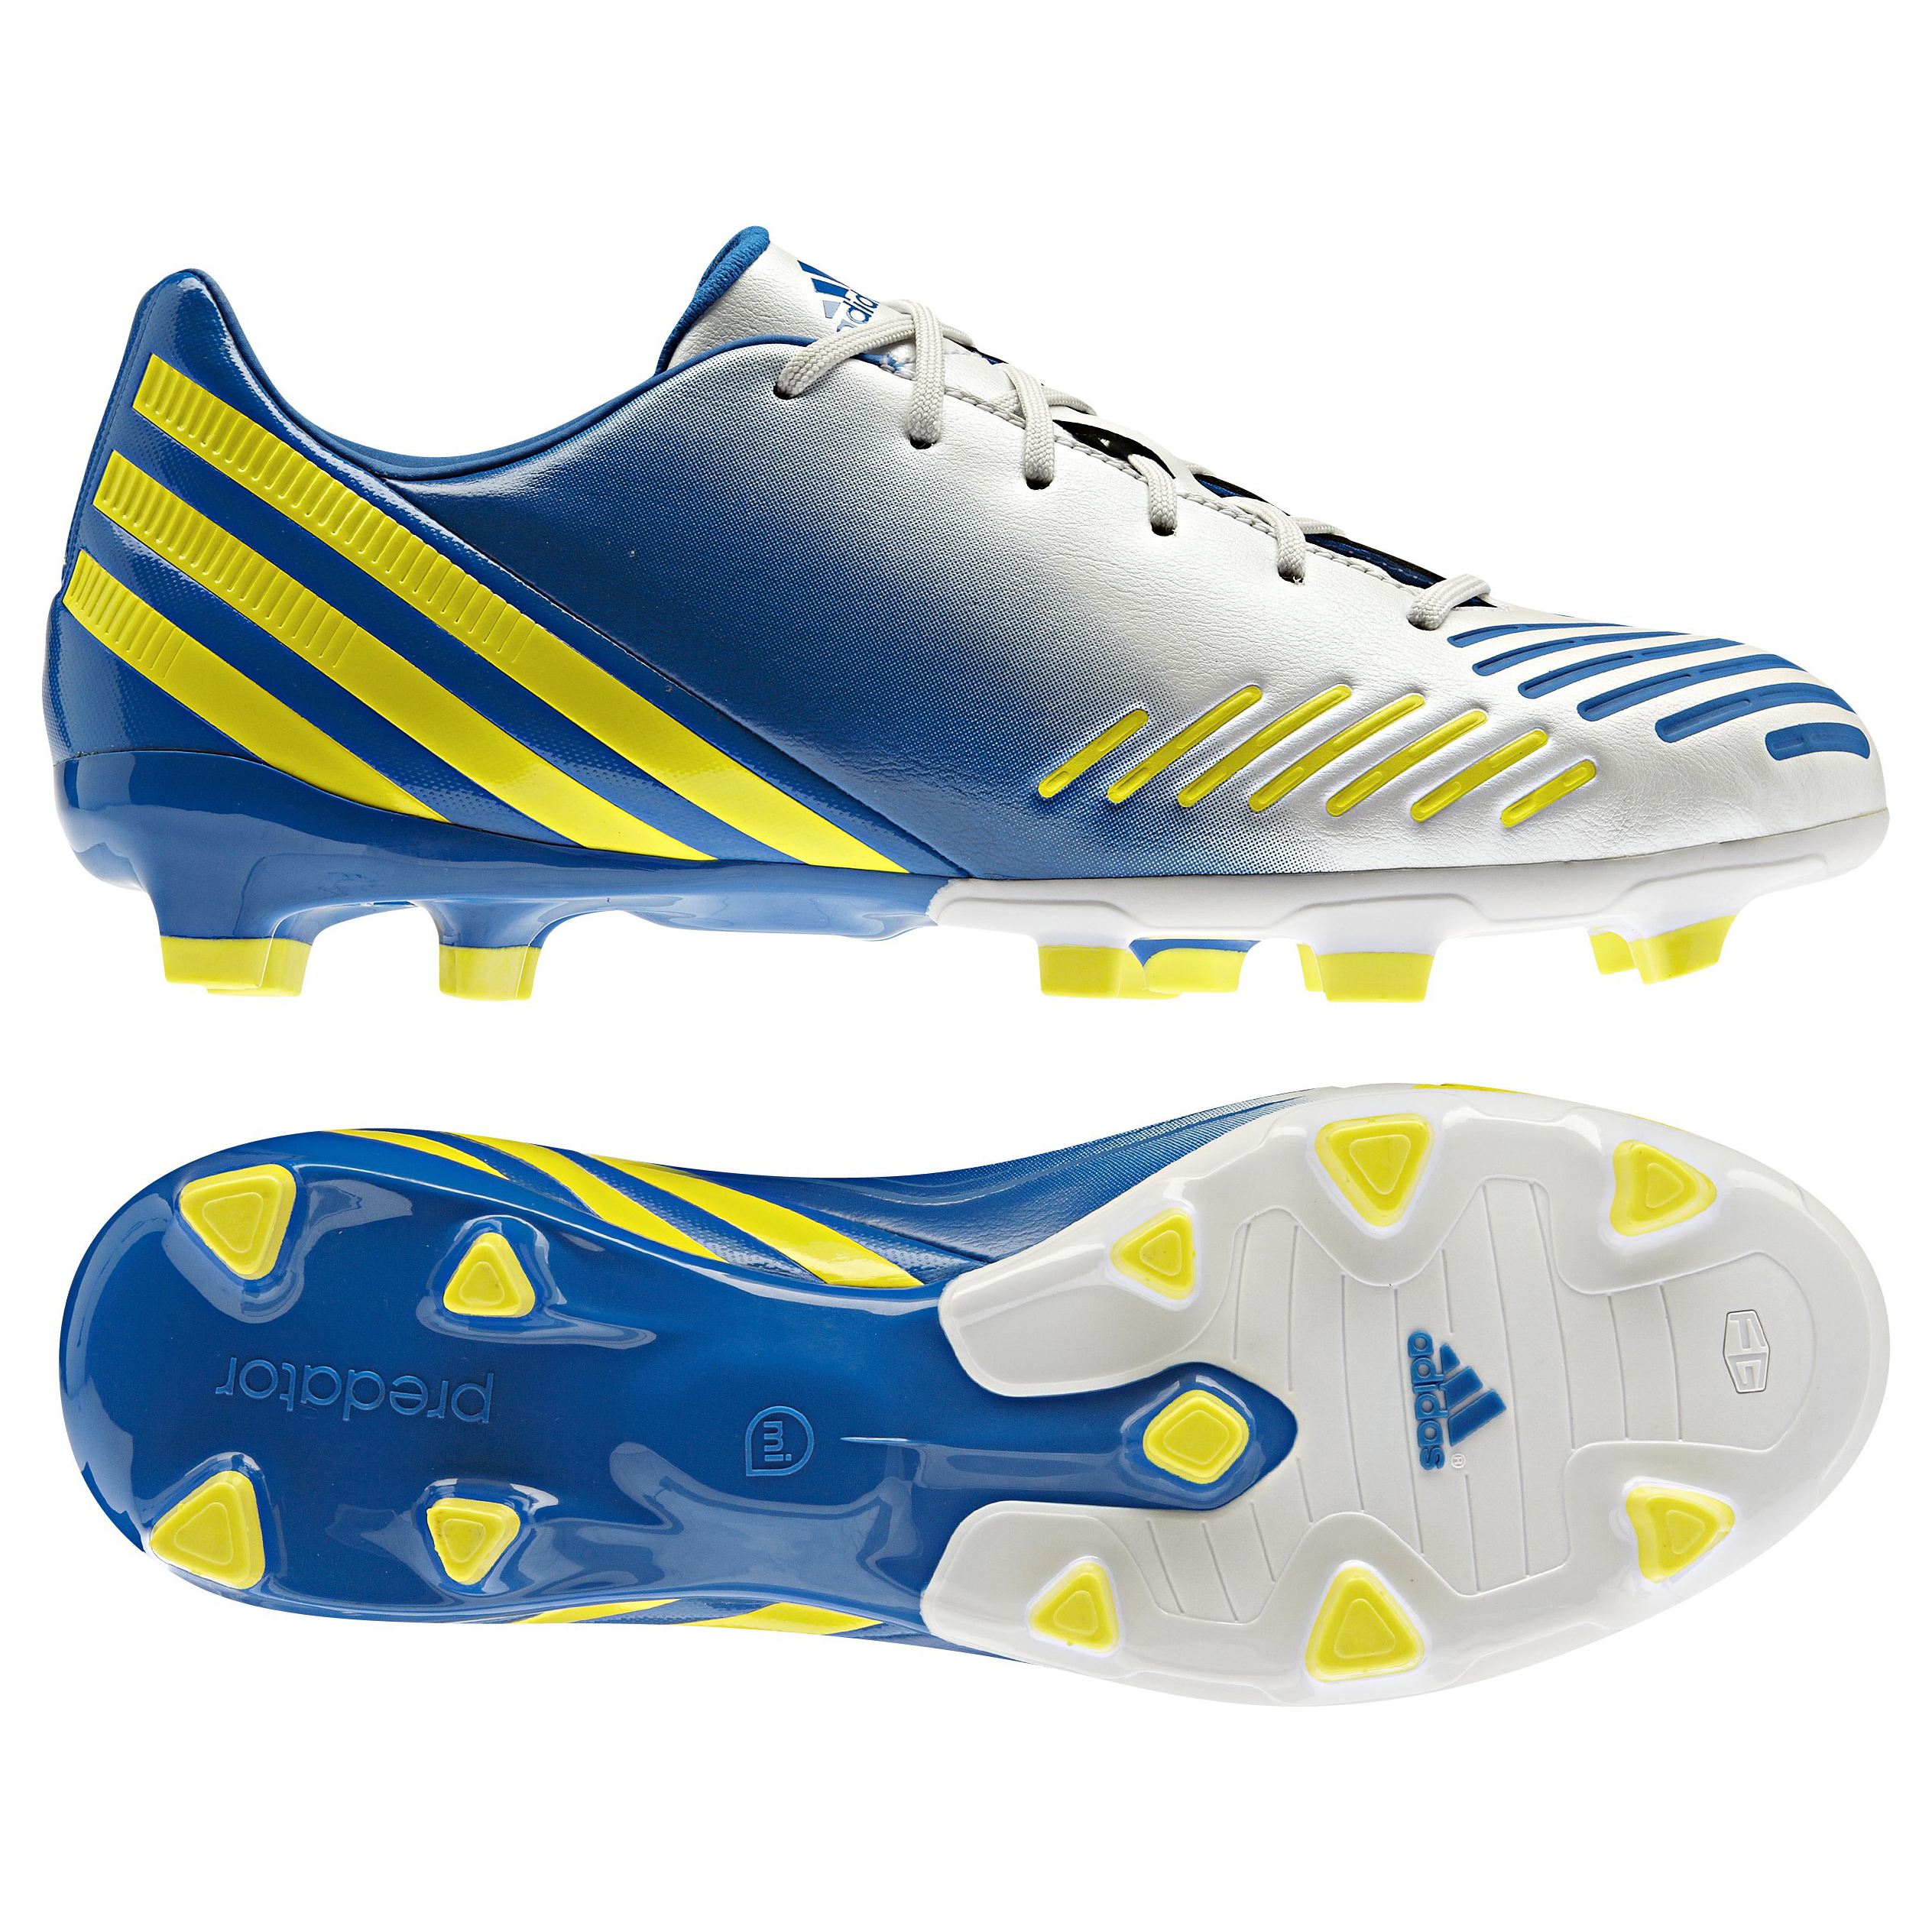 Adidas Predator Absolado LZ TRX Firm Ground Football Boots - White/Vivid Yellow/Prime Blue